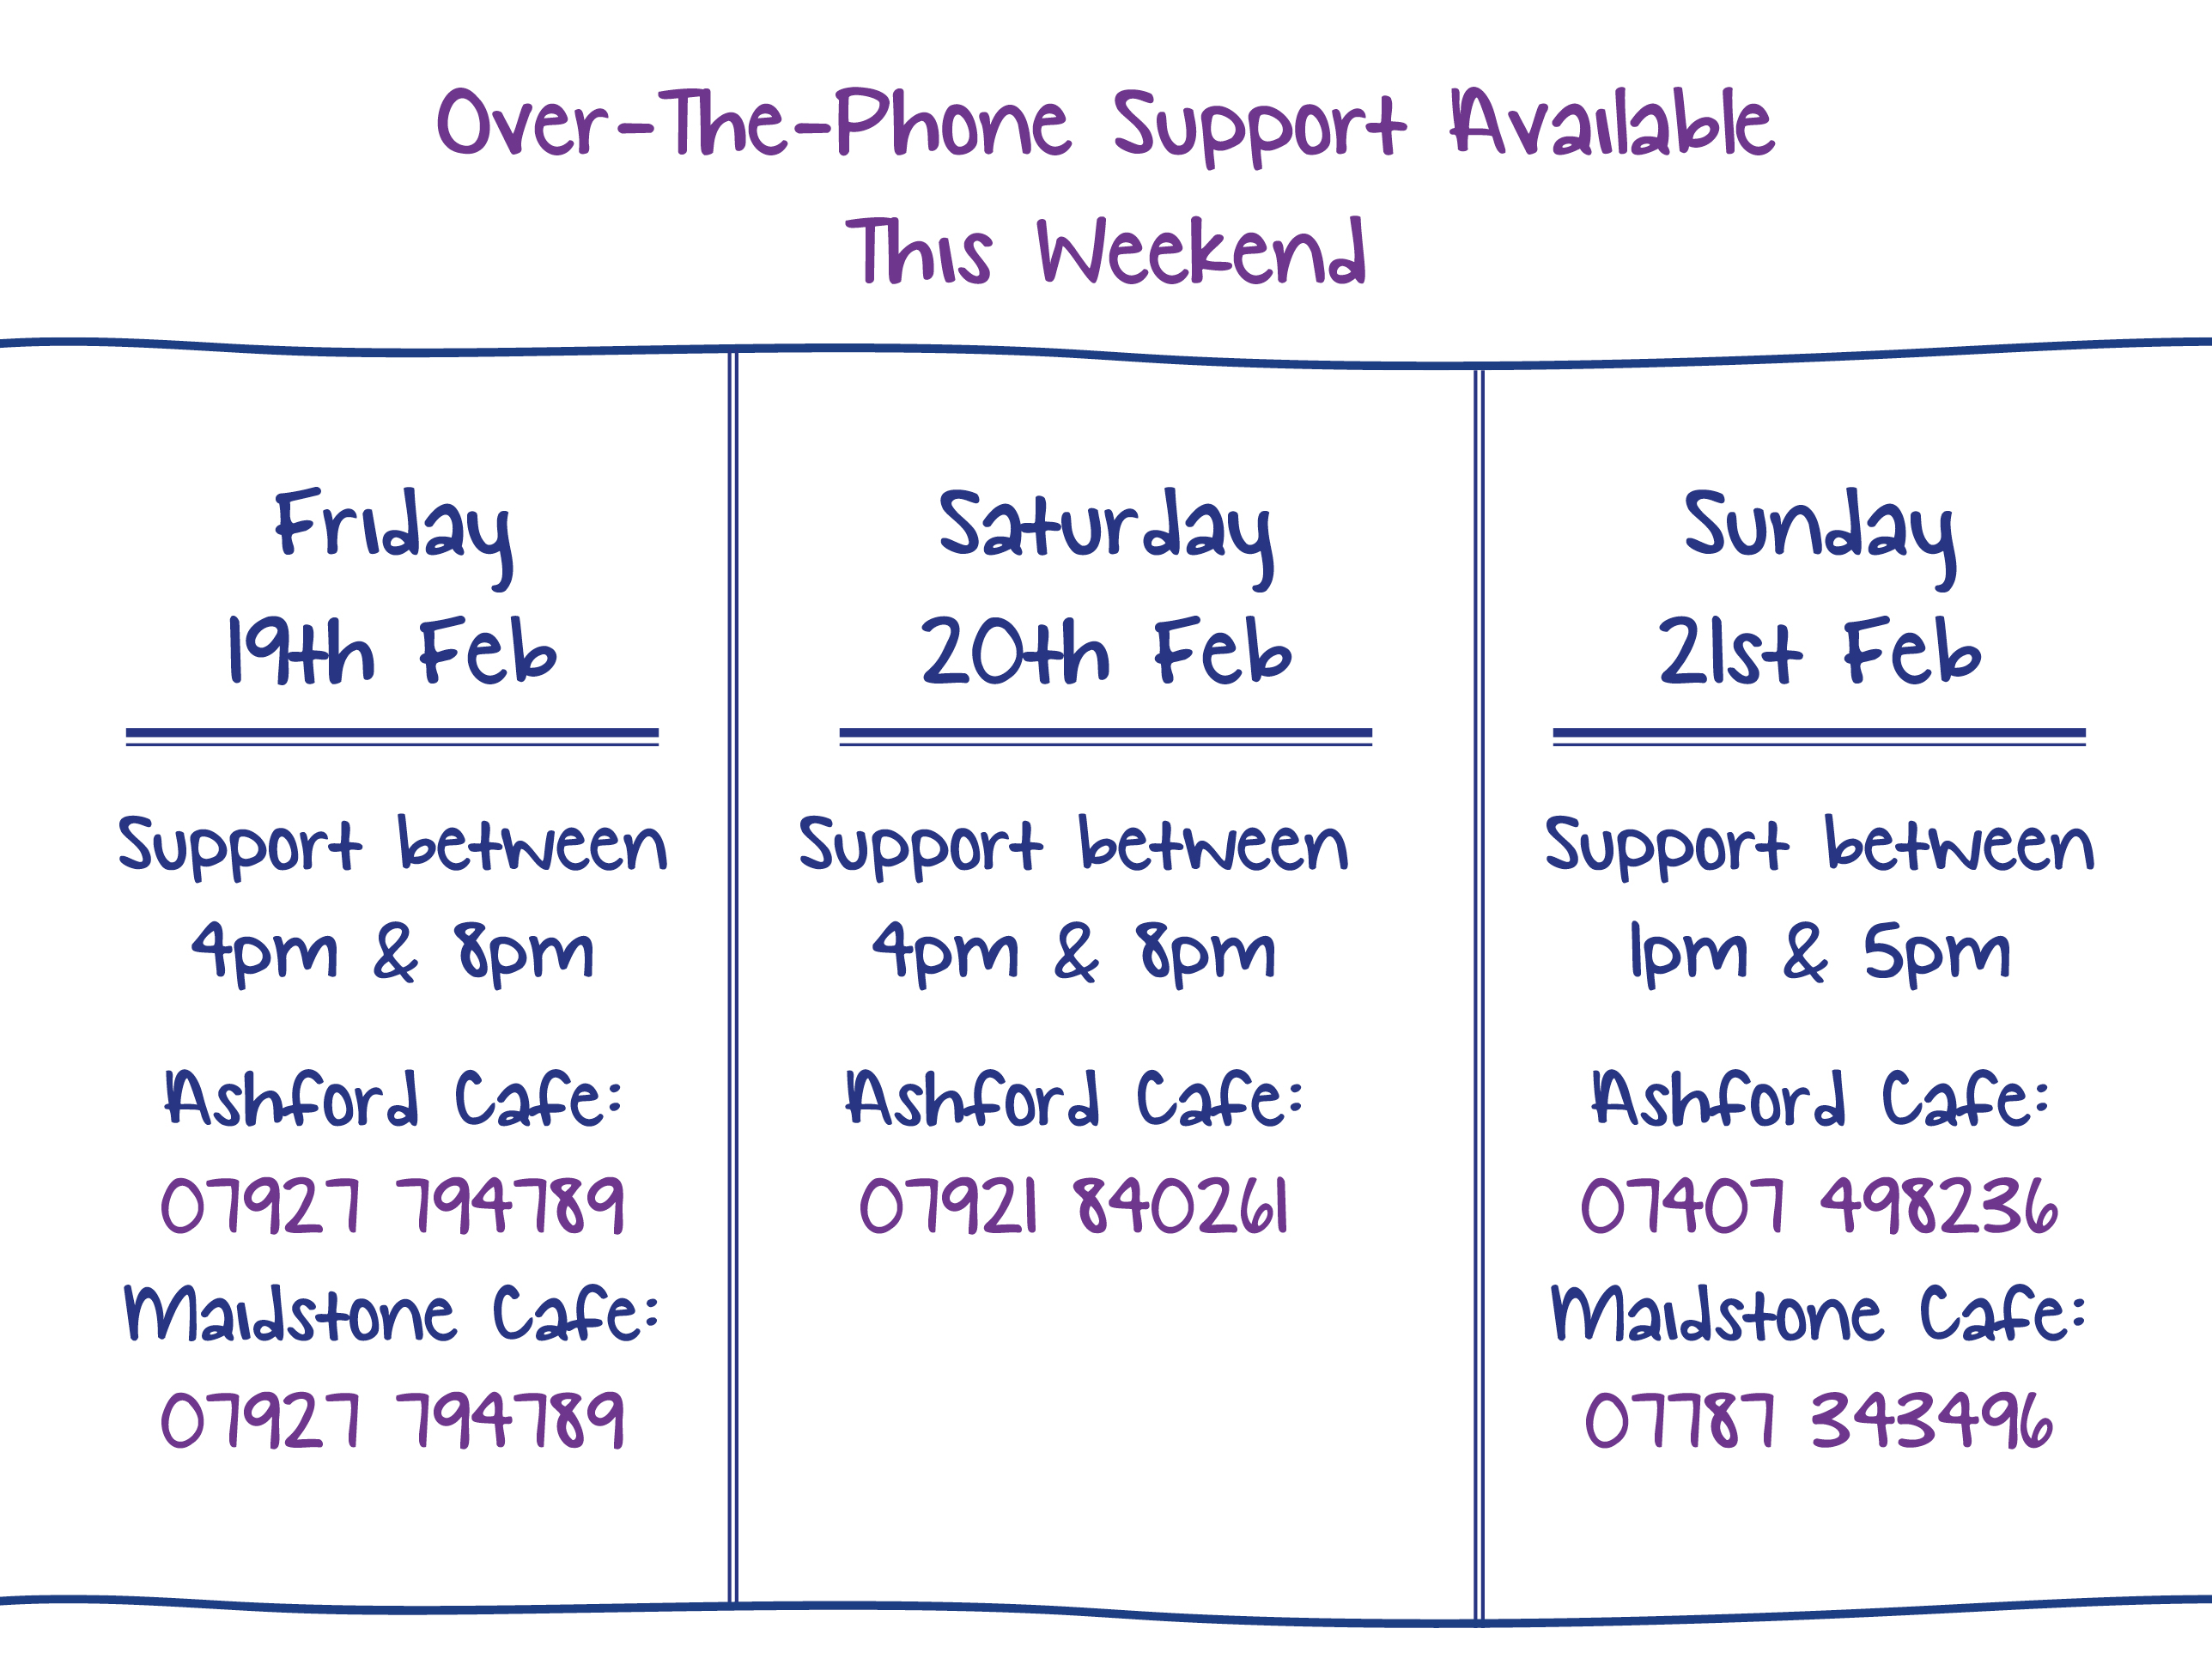 Over-The-Phone Support Available This Weekend. Friday 19th Feb. Support between 4pm & 8pm Ashford Cafe: 07927 794789 Maidstone Cafe: 07927 794789. Saturday 20th Feb. Support between 4pm & 8pm Ashford Cafe: 07921 840261. Sunday 21st Feb. Support between 1pm & 5pm Ashford Cafe: 07407 498236 Maidstone Cafe: 07787 343496